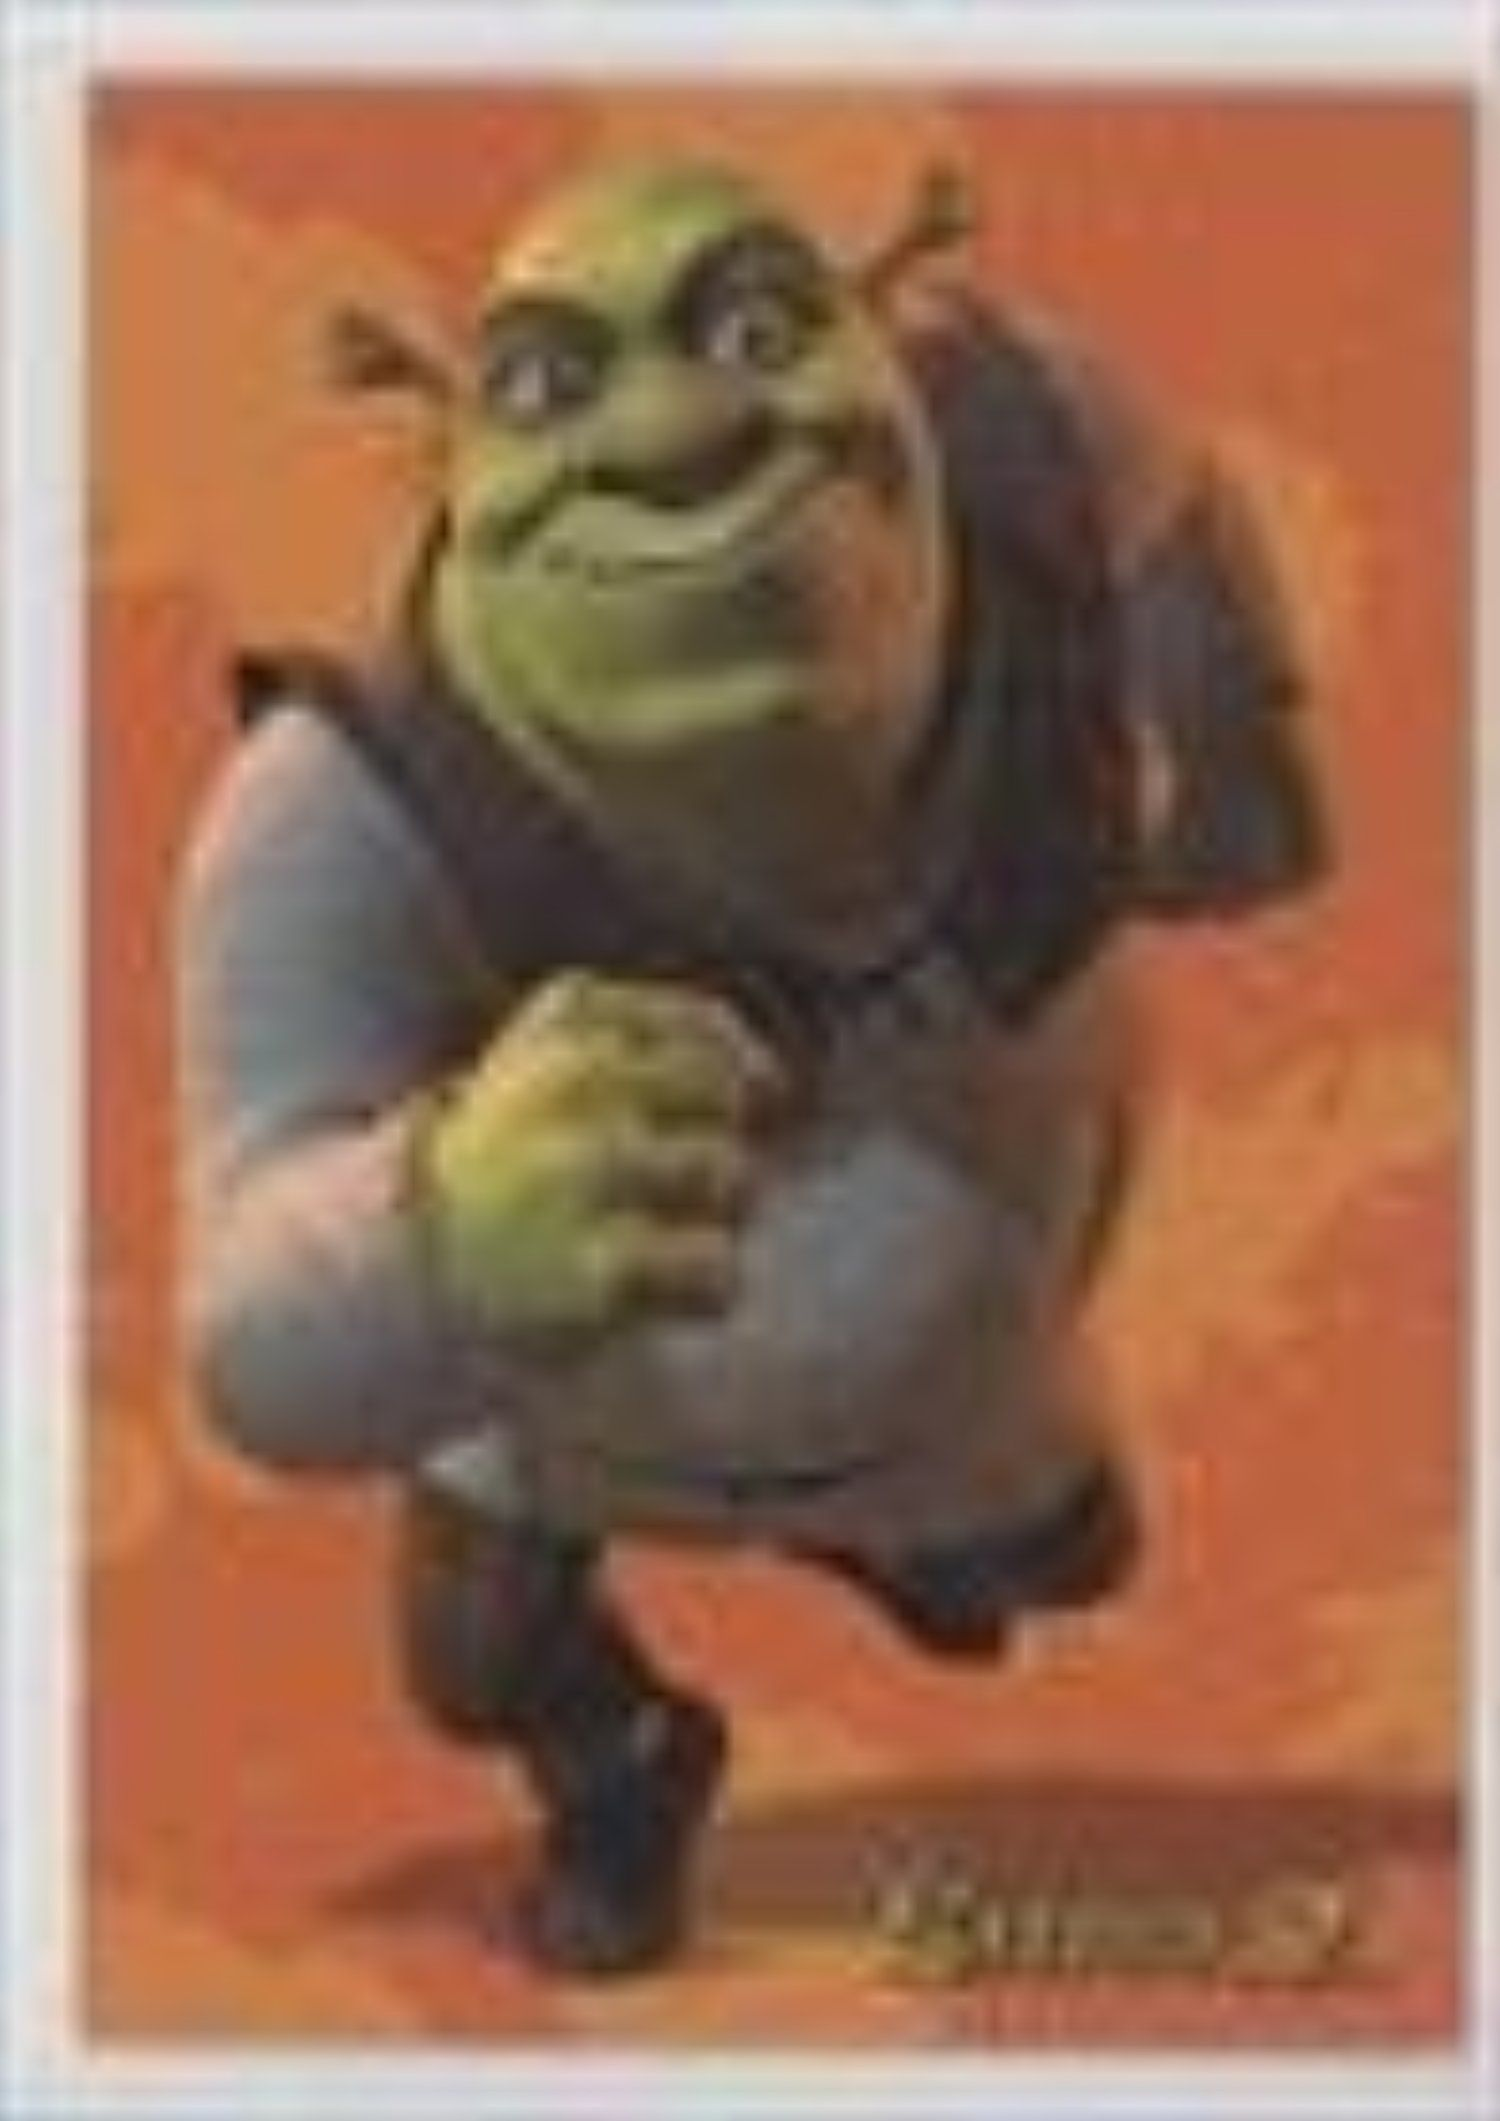 Shrek Trading Card 2004 Comic Images Shrek 2 Promos P3 Awesome Products Selected By Anna Churchill Shrek Trading Cards Comics